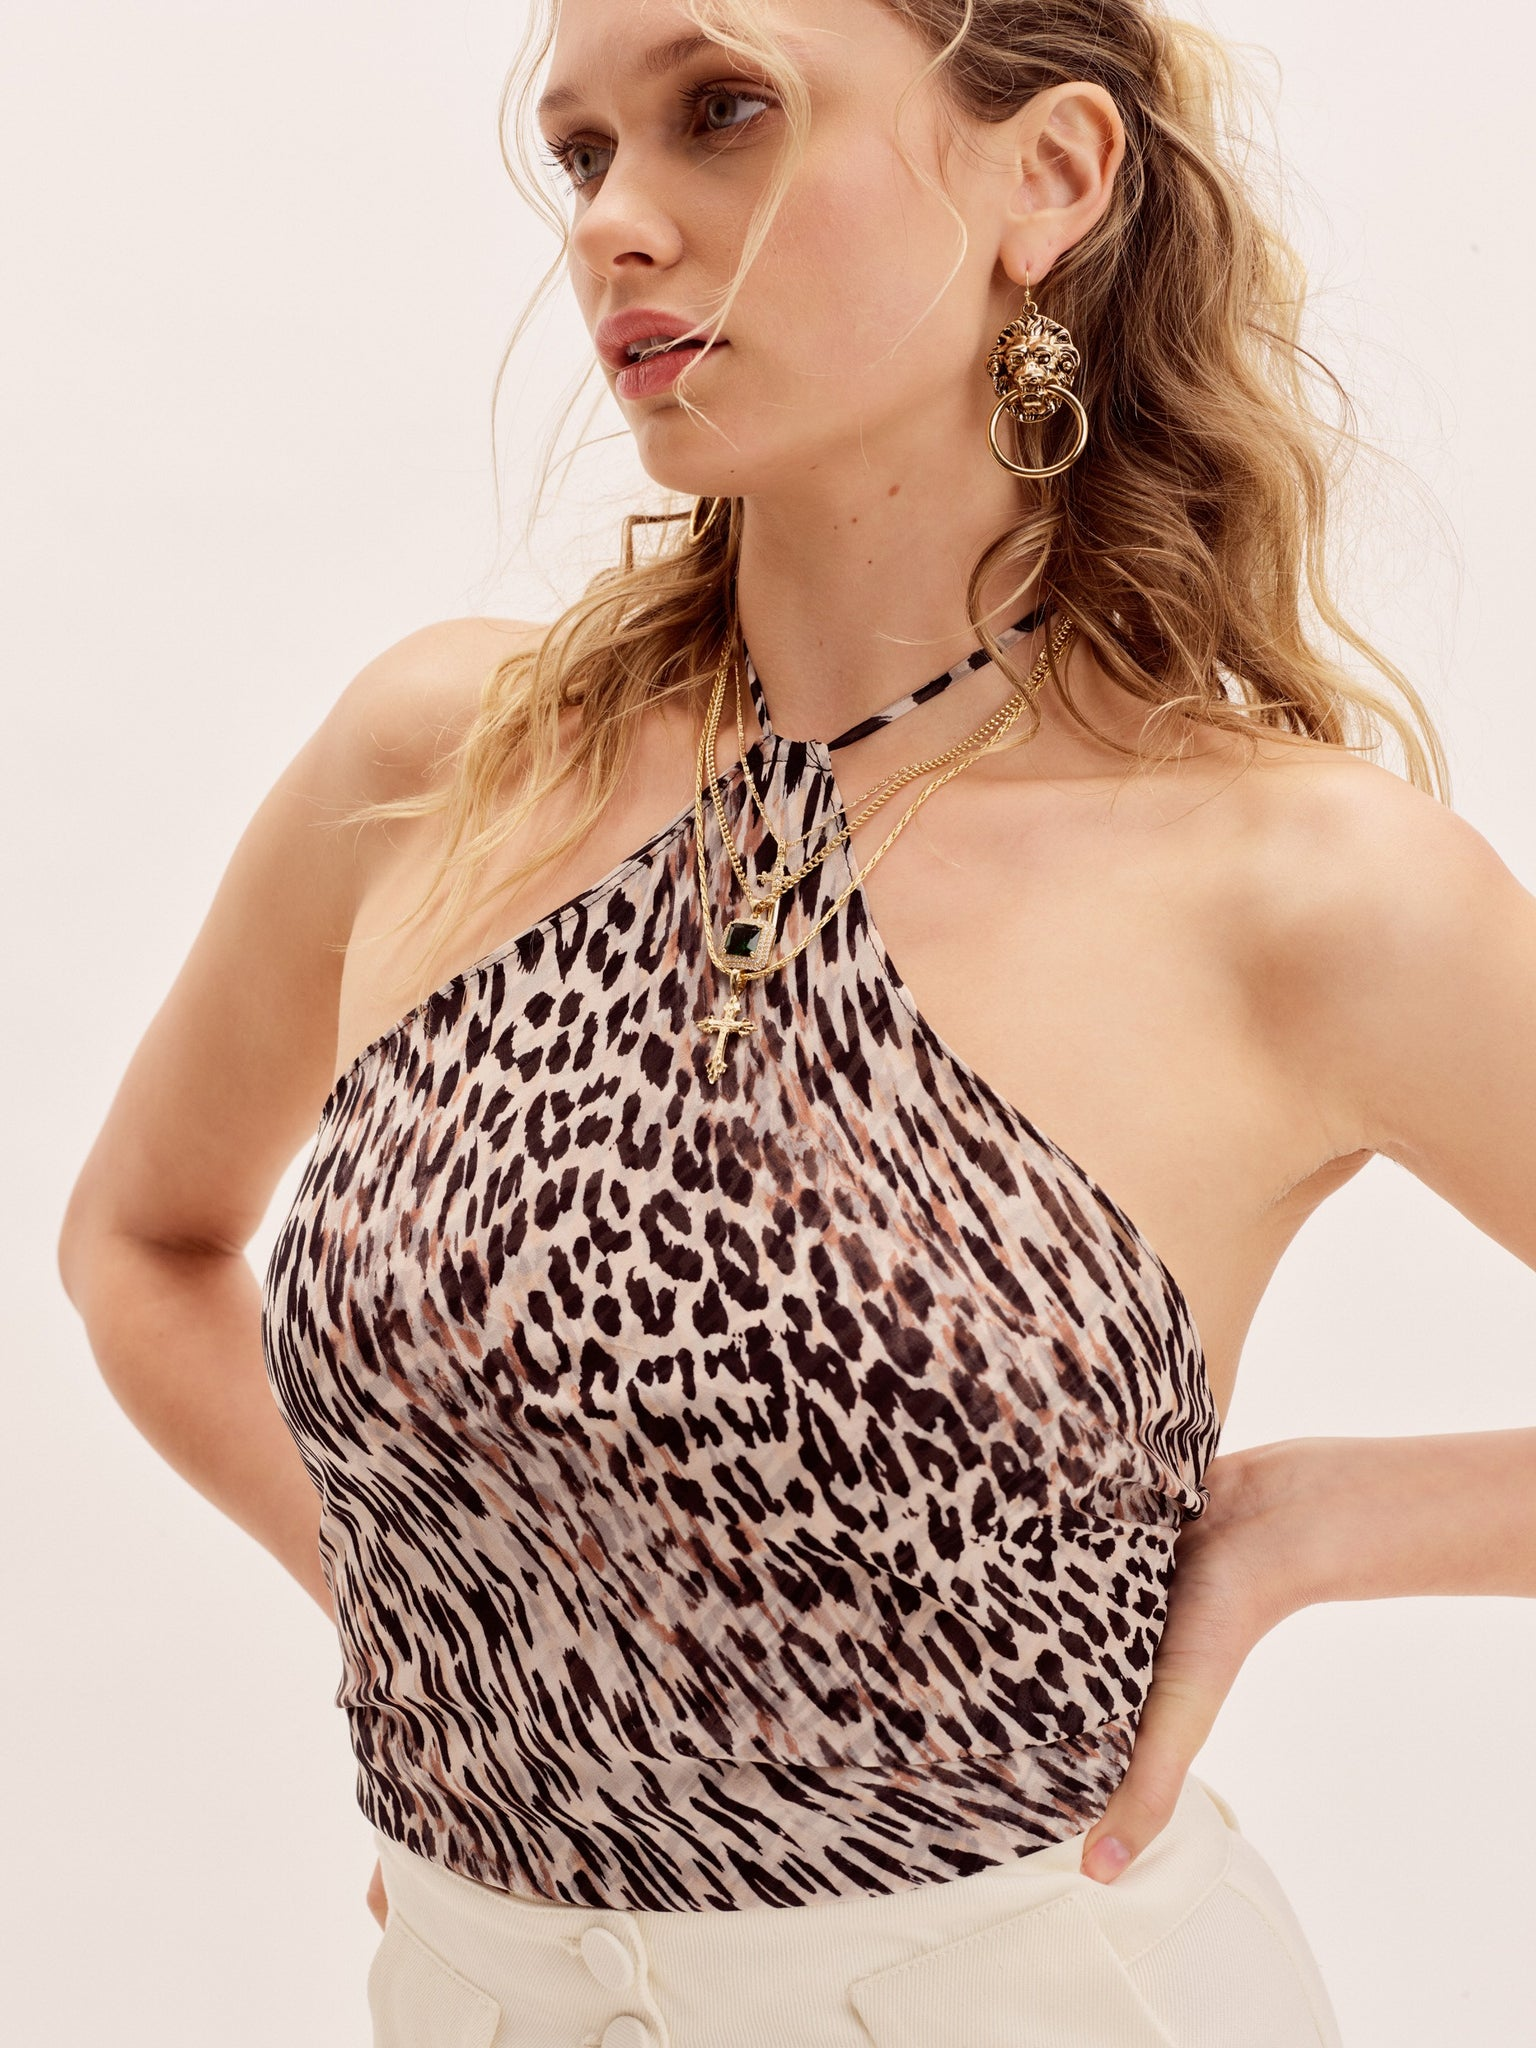 Clothing The Elle Top - Leopard Print Vanessa Mooney